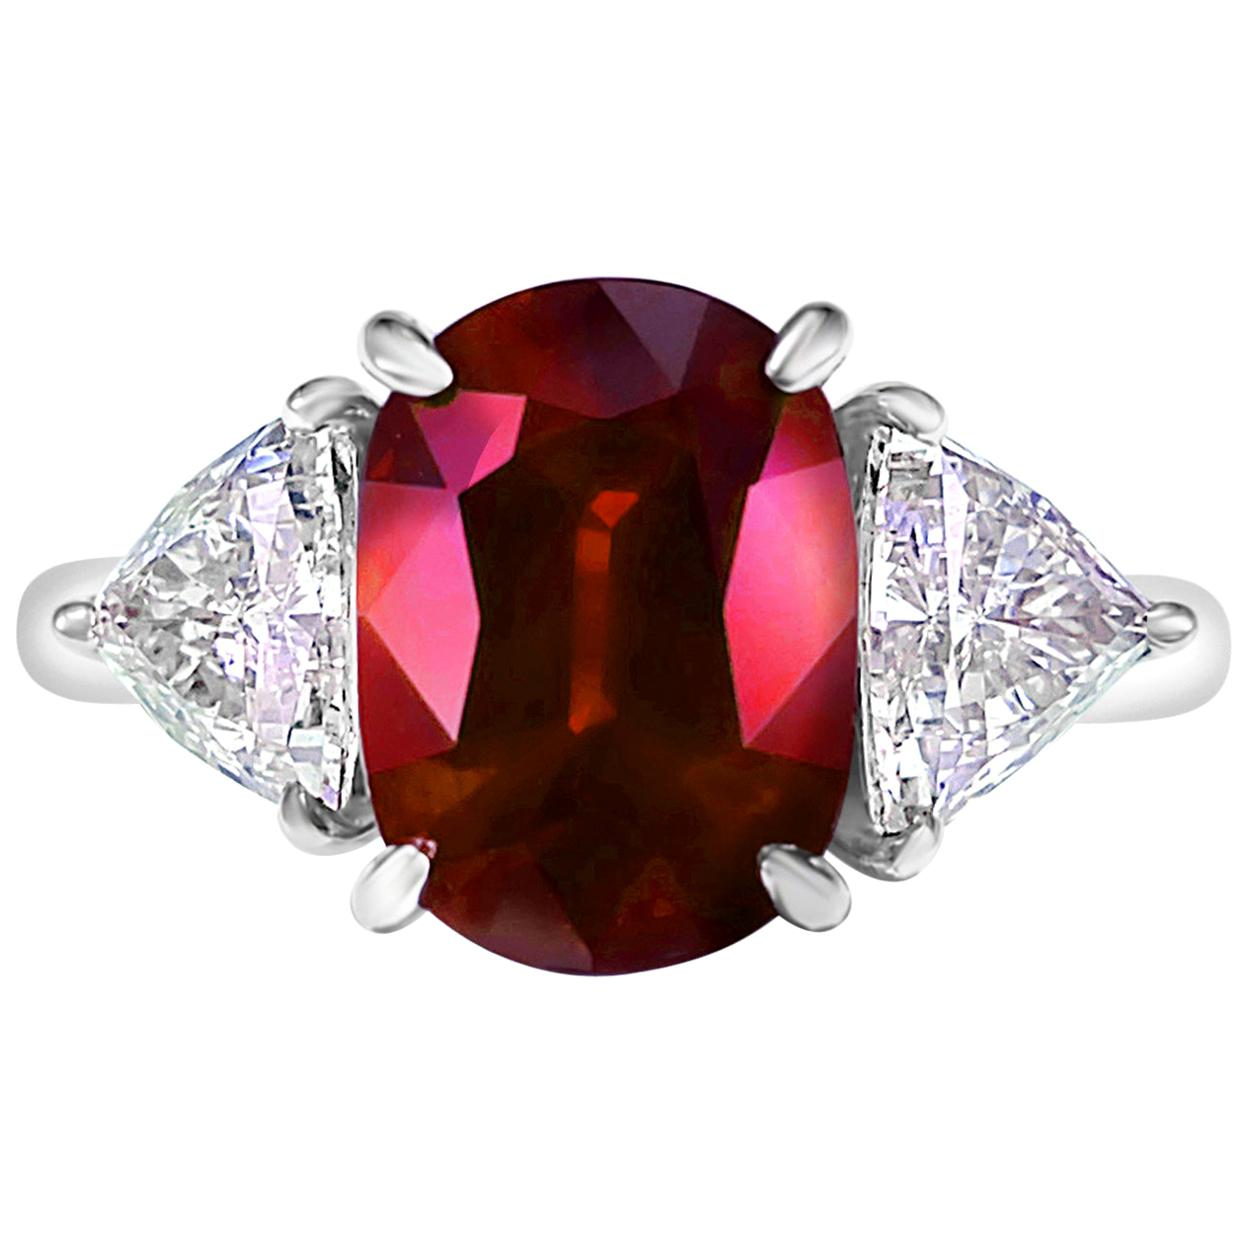 GRS Certified 4.26 Carat Vivid Red Ruby and Diamond Solitaire Ring